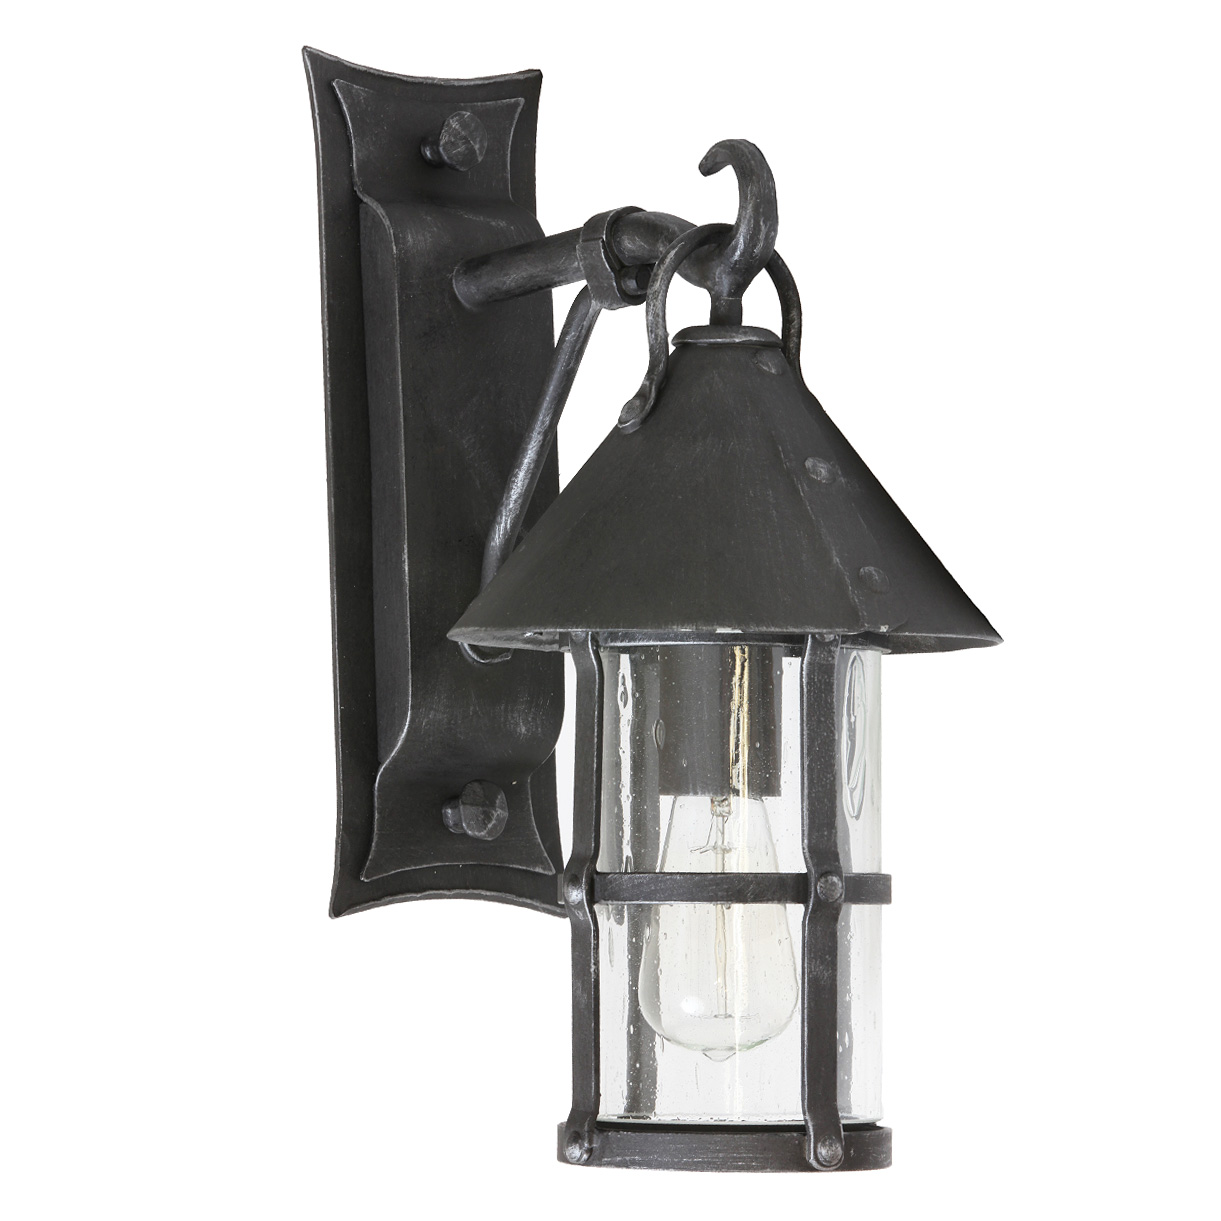 Medieval Wrought Iron Outdoor Sconce Wl 3497 3495 Terra Lumi